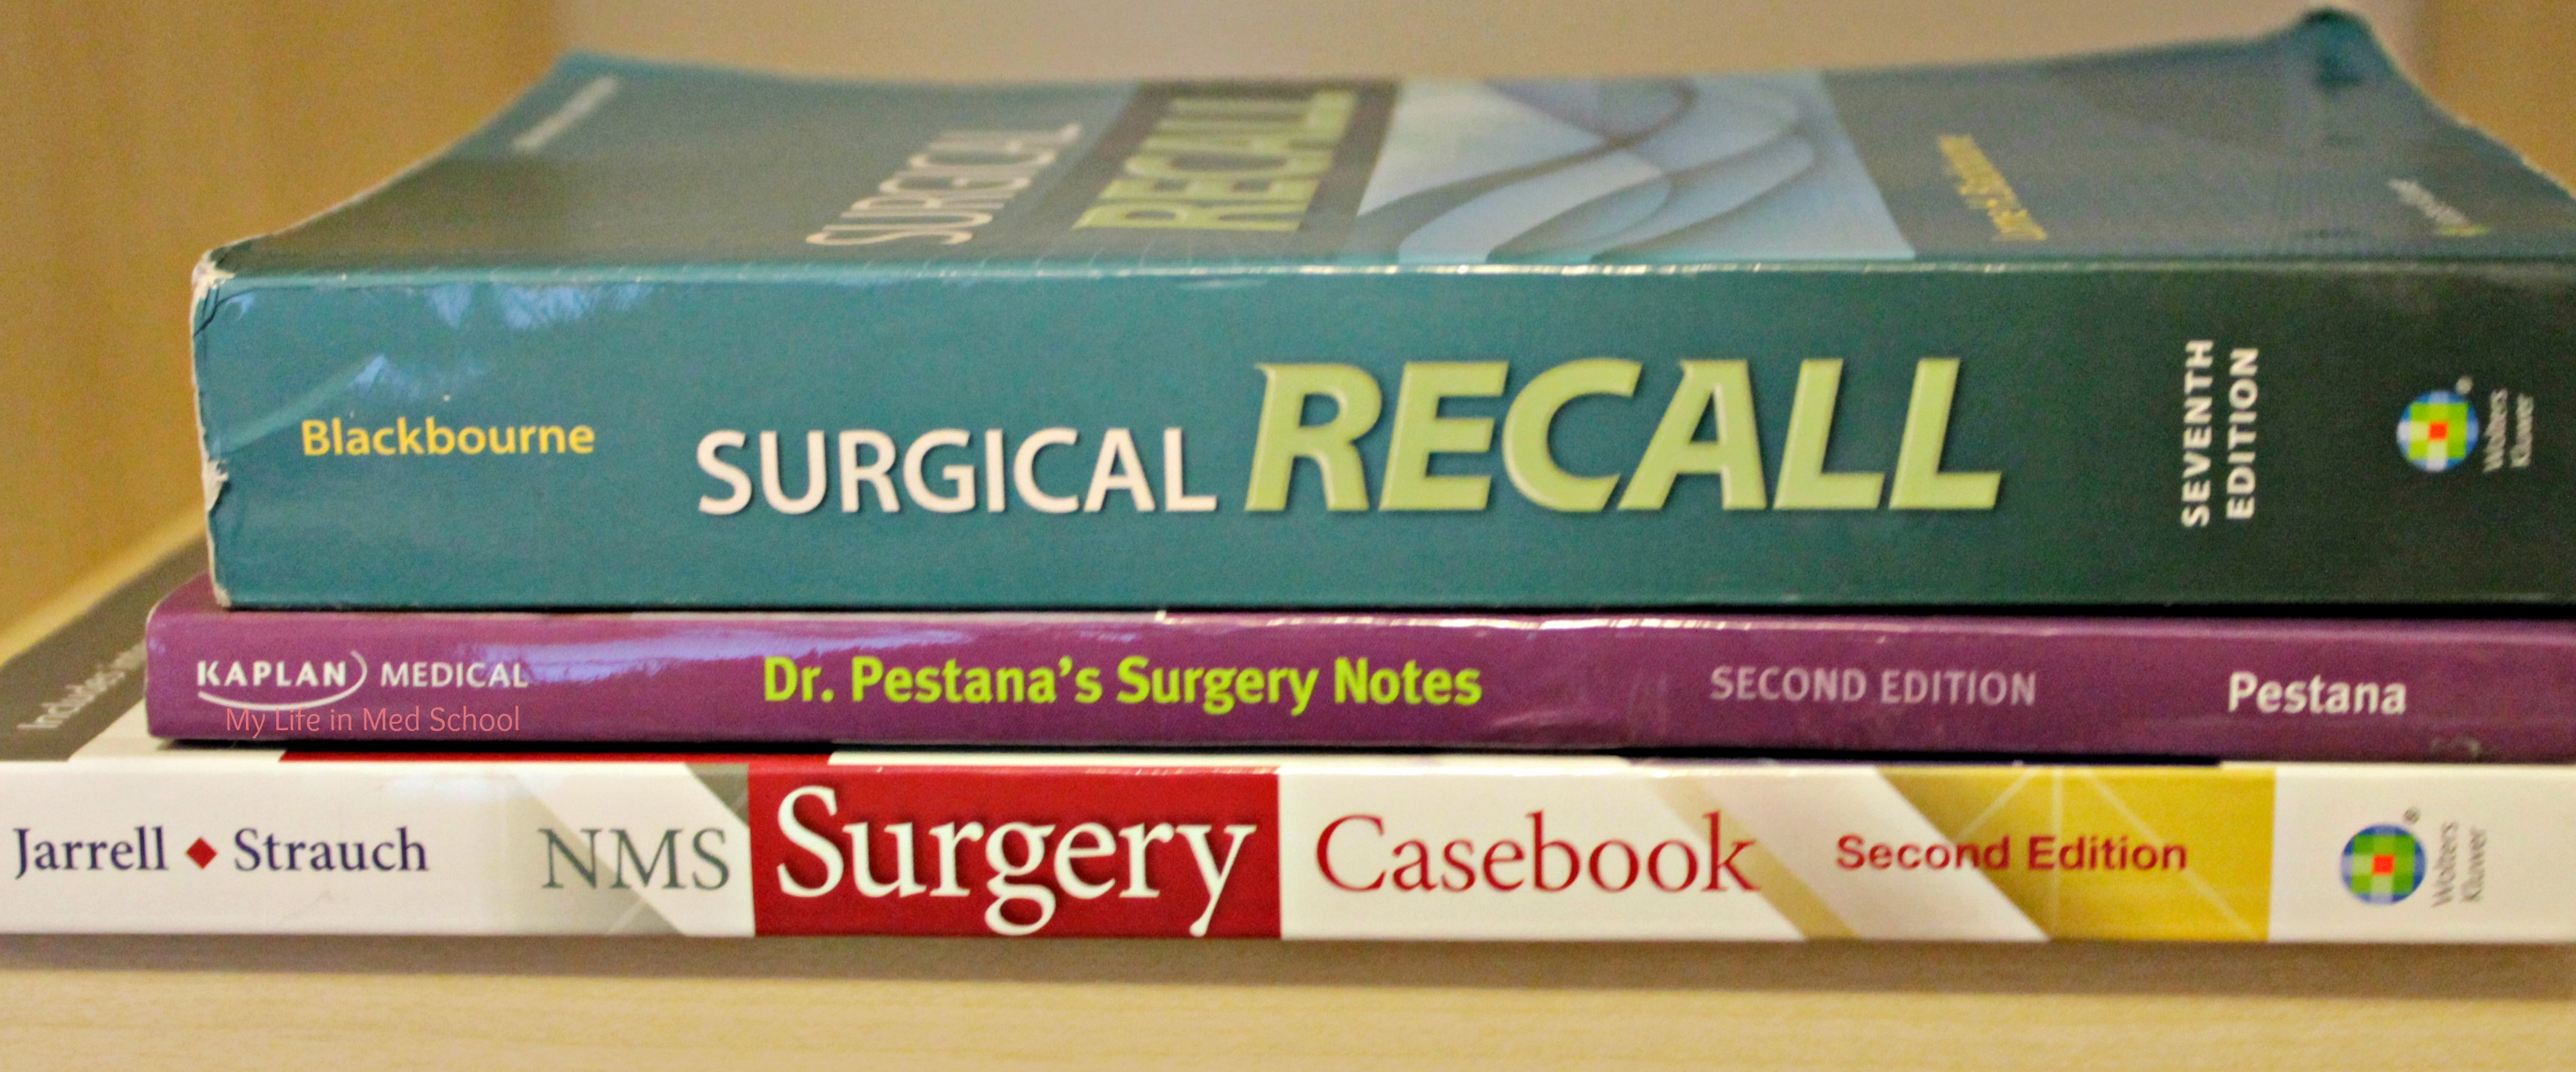 Surgery Rotation Books